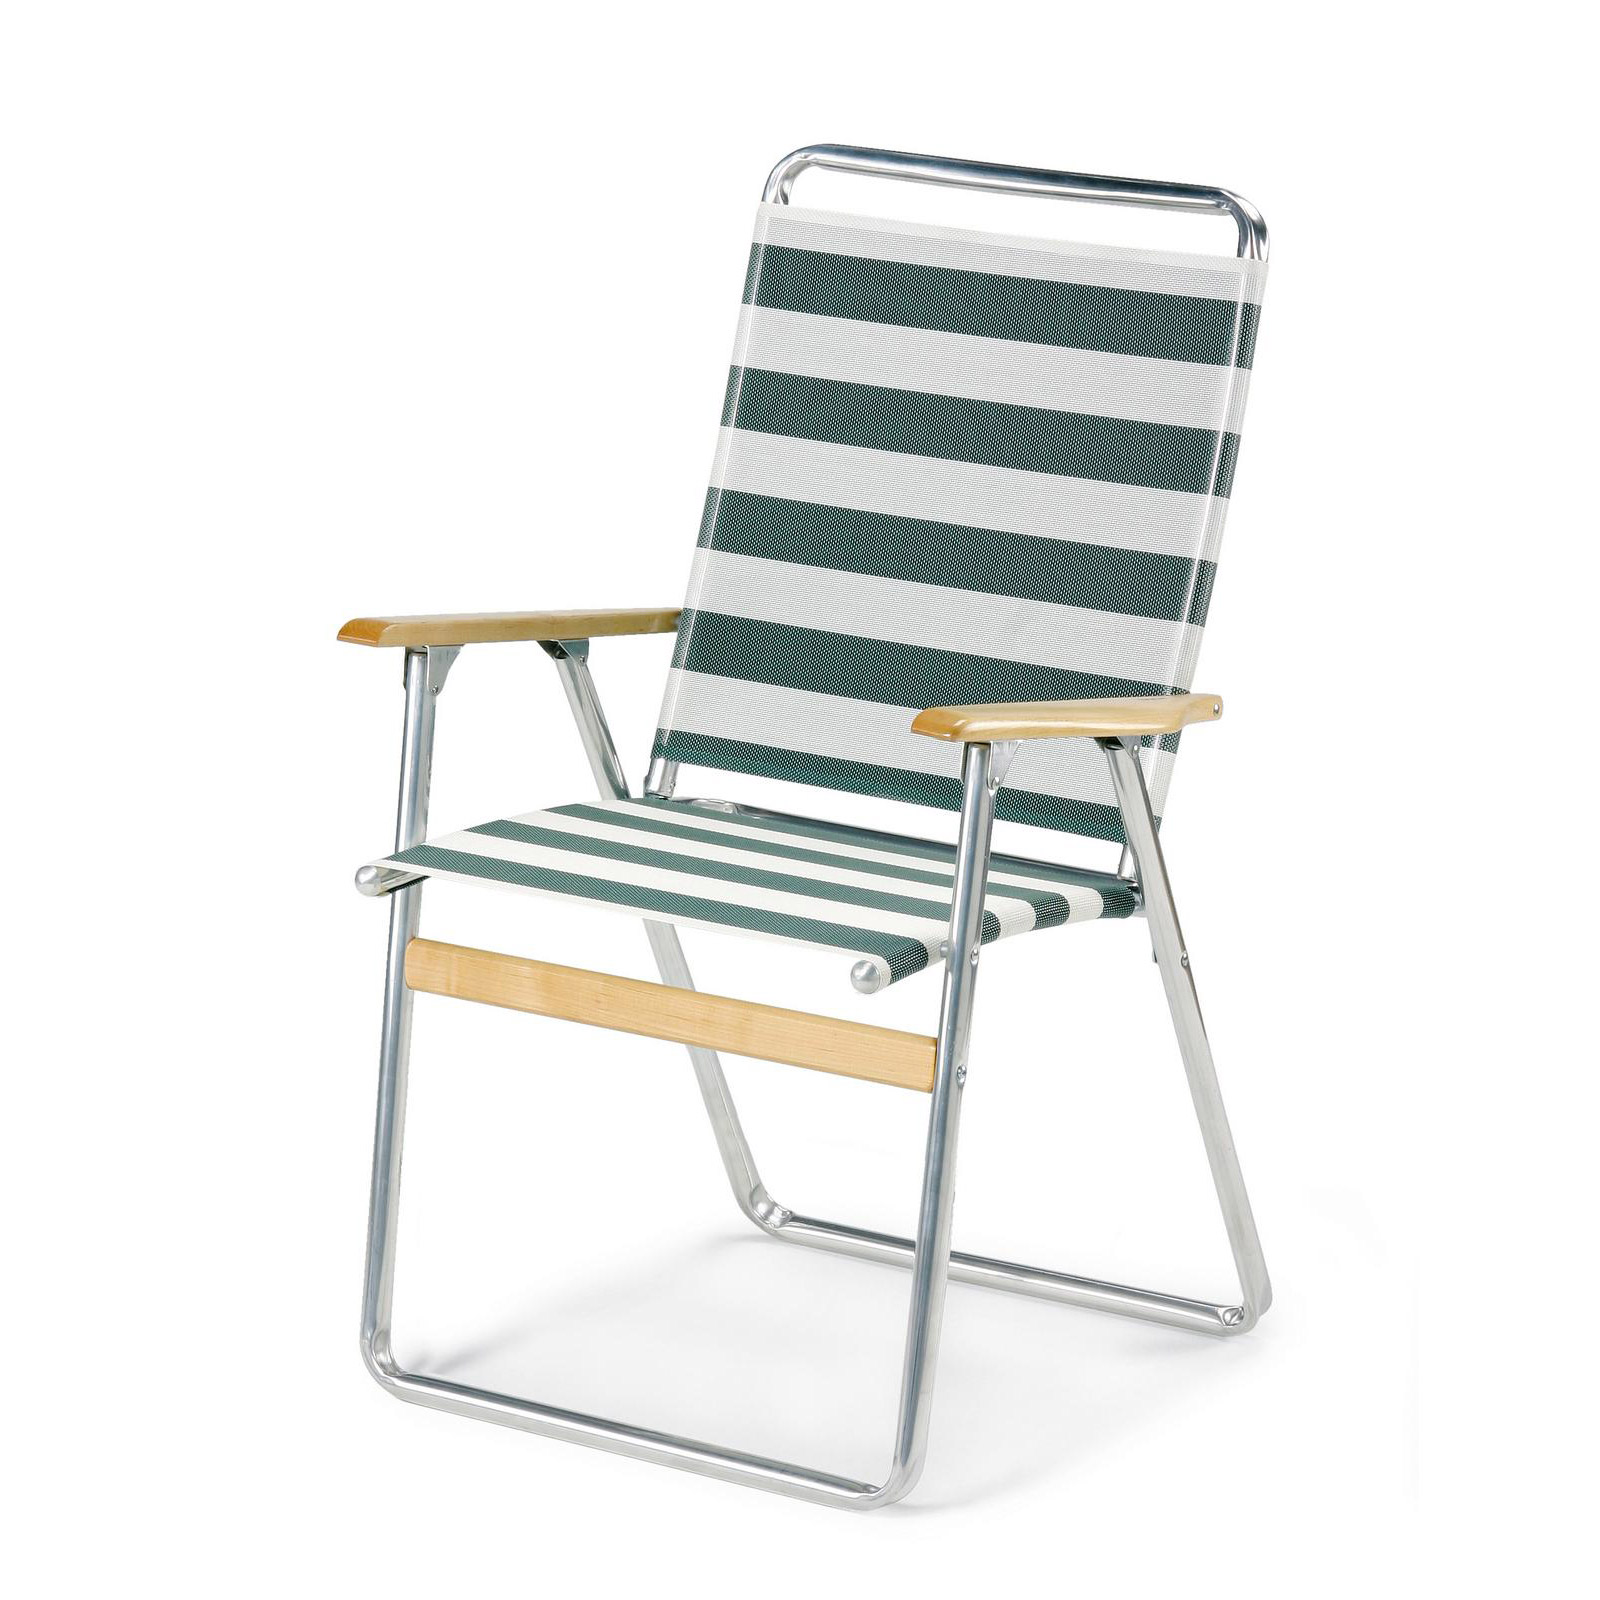 Telescope Beach Chair Milgreen Patio Furniture Telescope Beach Chair Milgreen Patio